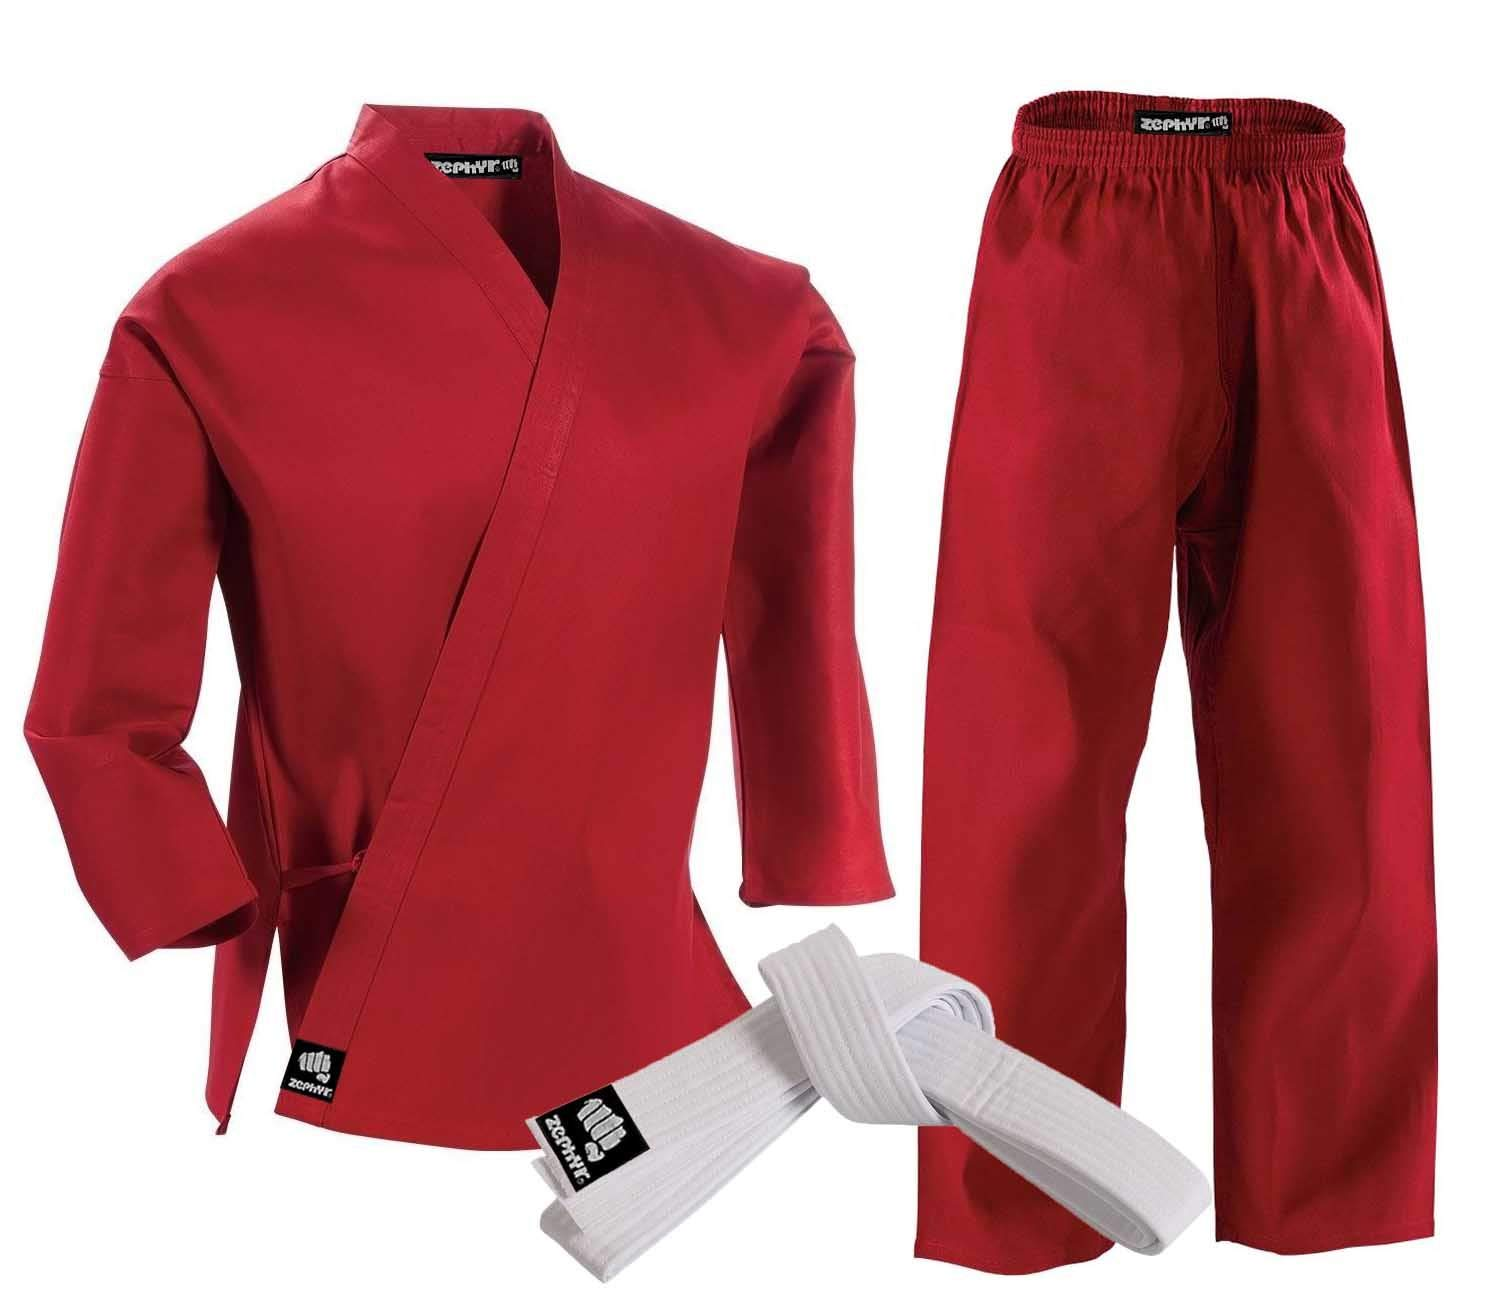 Zephyr Martial Arts Karate Gi Student Uniform with Belt - Red - 000 by Zephyr Tactical